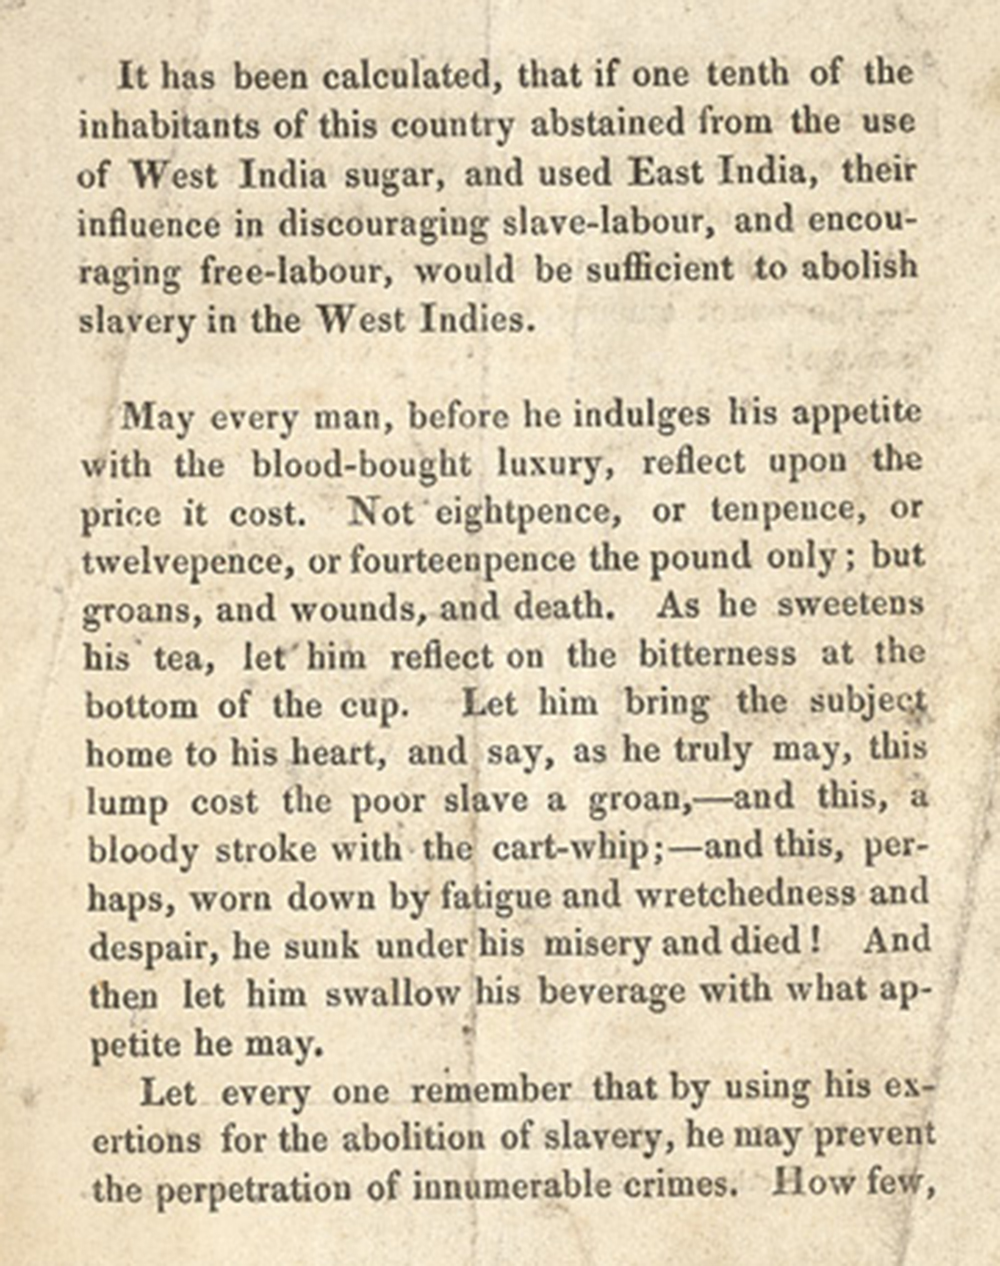 """Reasons for Using East India Sugar,"" Peckham Ladies' African and Anti-Slavery Association, 1828. British Library."